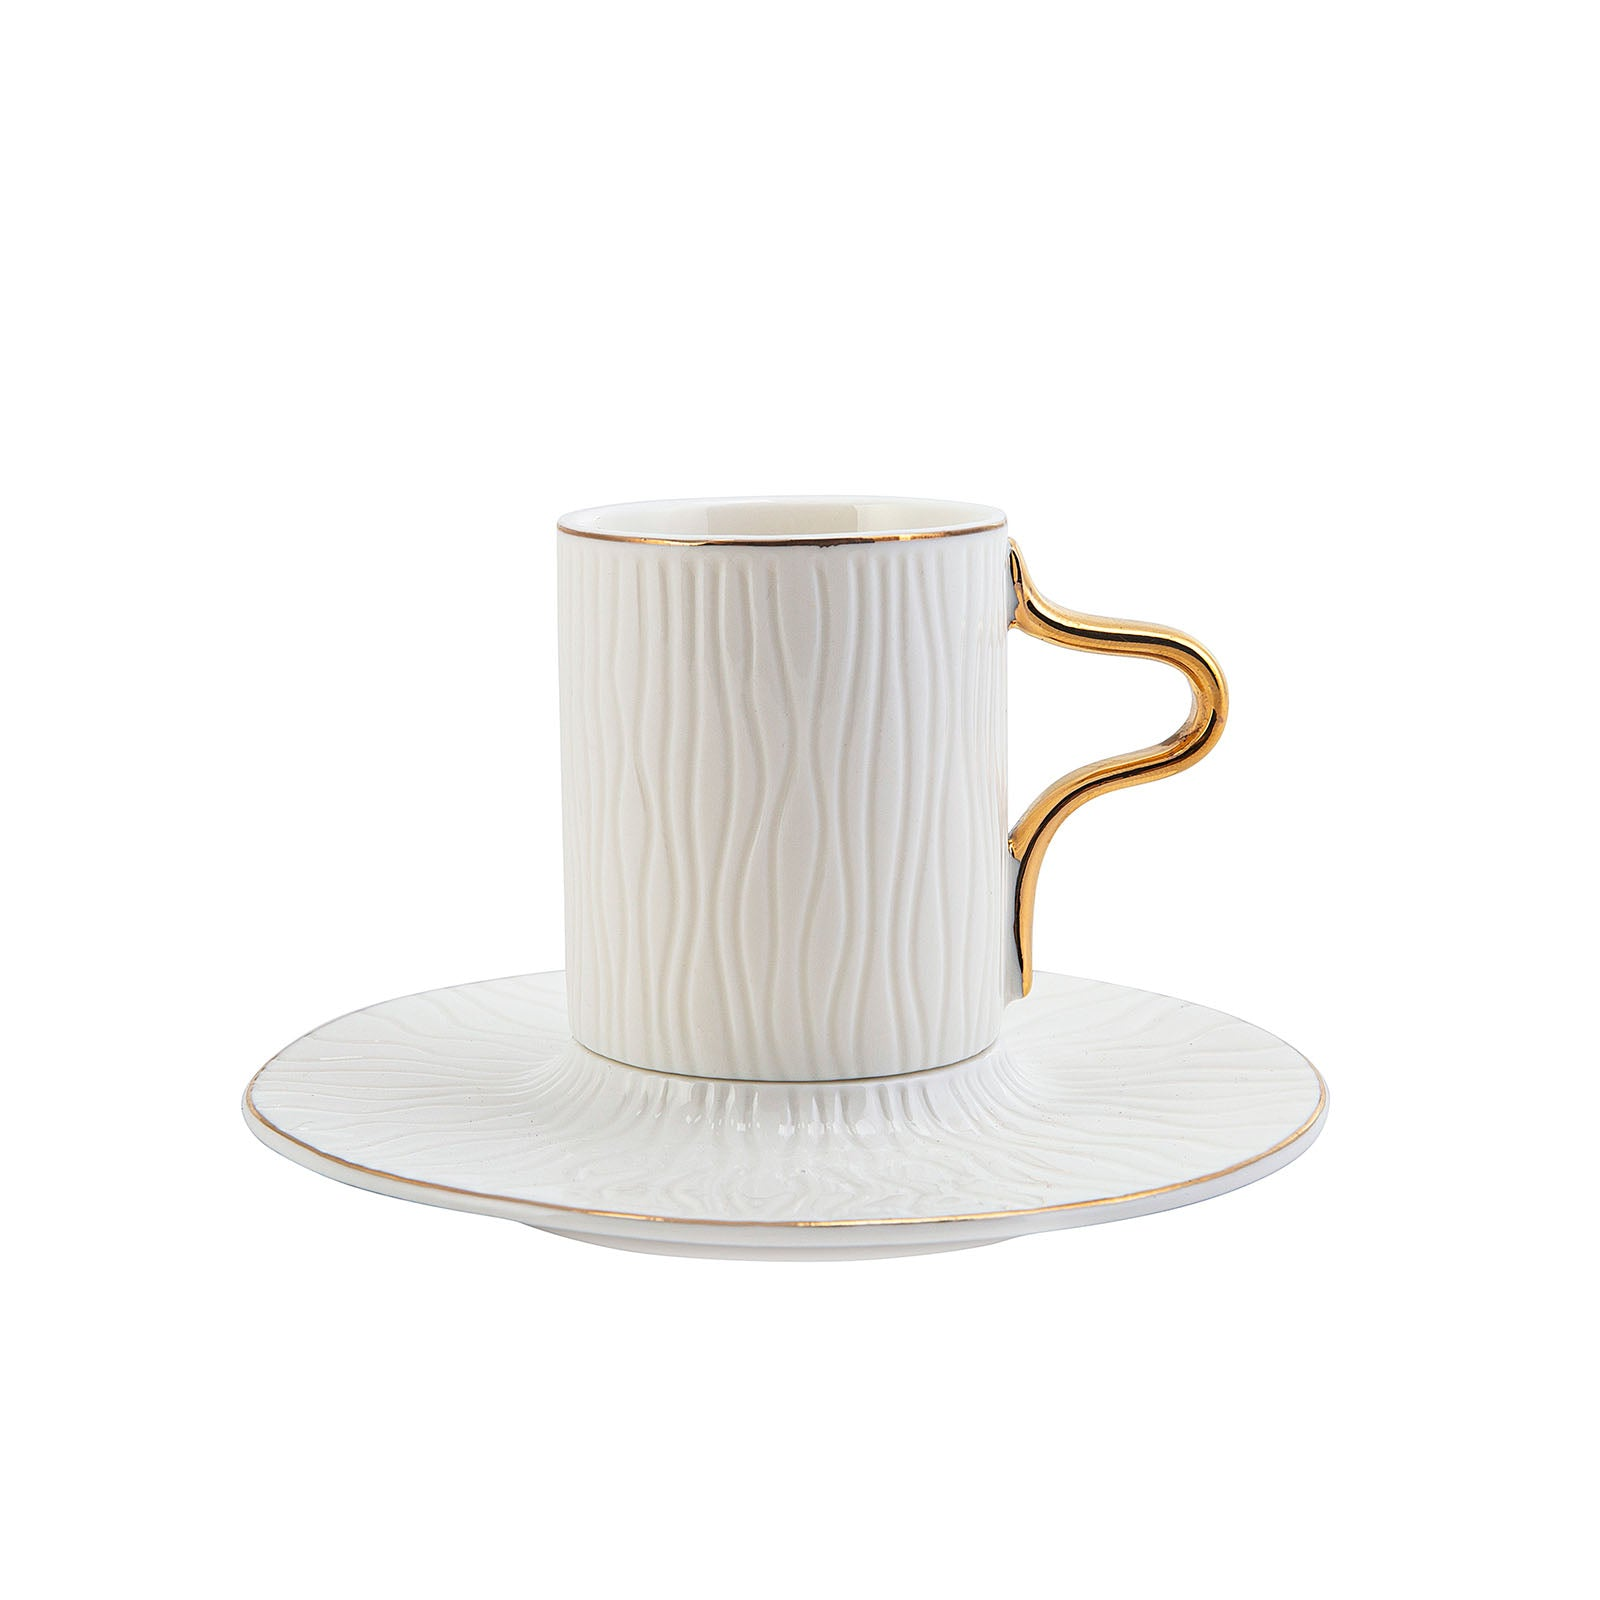 Karaca Aged Set of 6 Coffee Cups 153.03.07.8414 -  مجموعة فناجين قهوة كاراجا من 6 فناجين - Shop Online Furniture and Home Decor Store in Dubai, UAE at ebarza